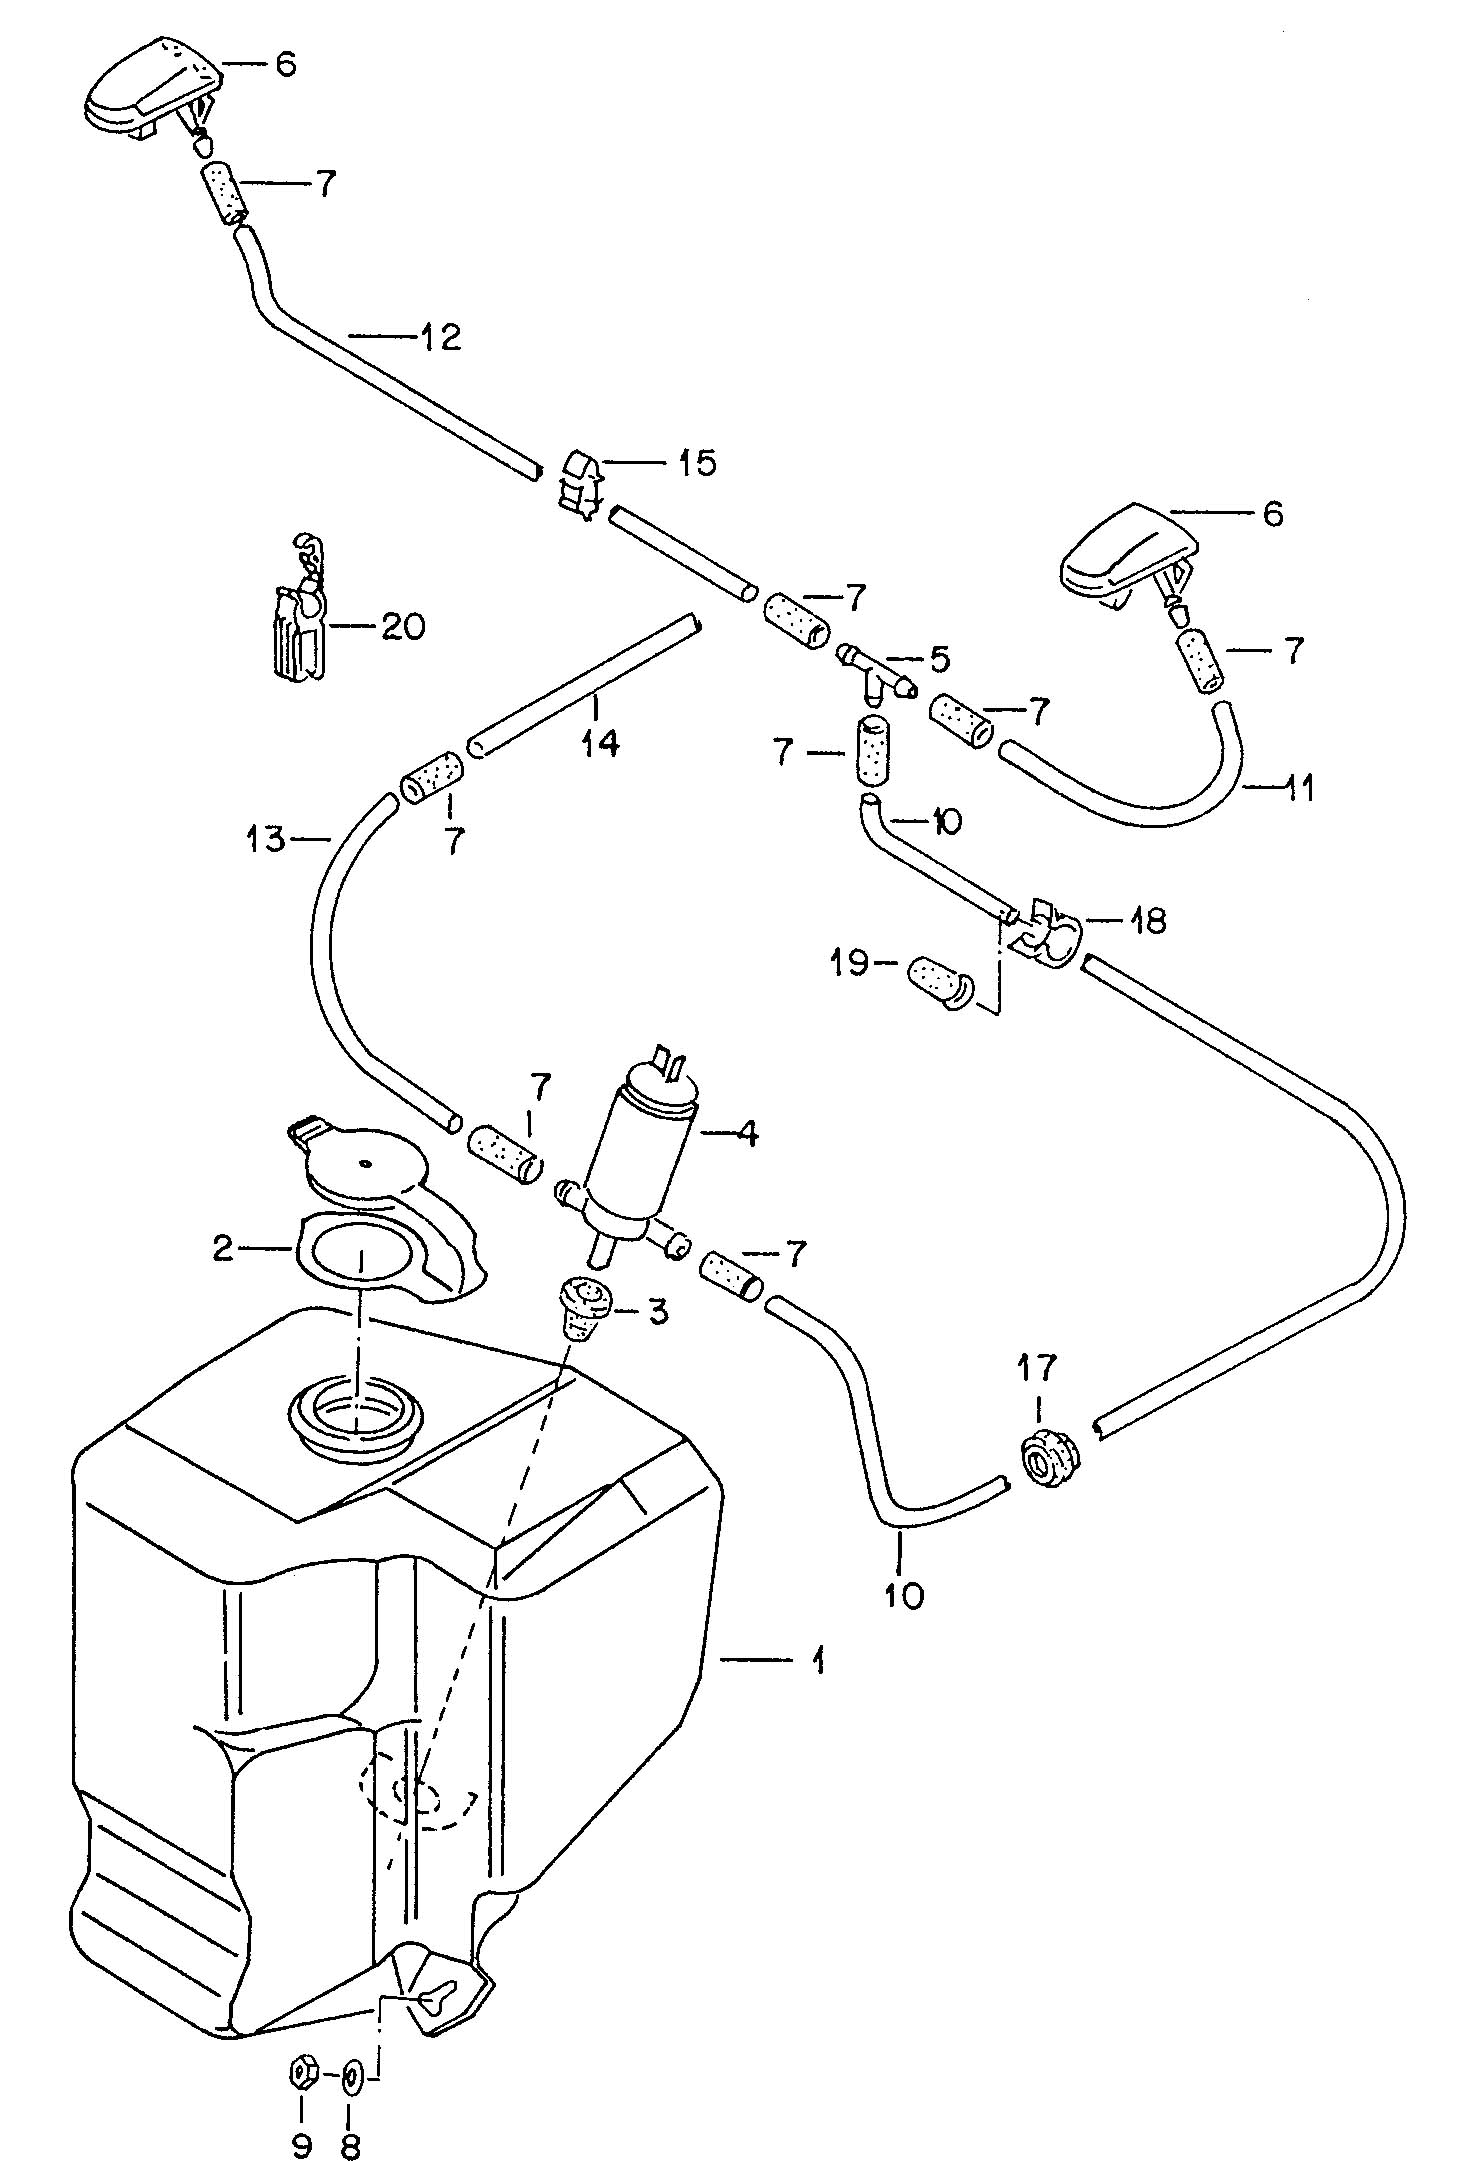 Volkswagen For Vehicles With Central Convoluted